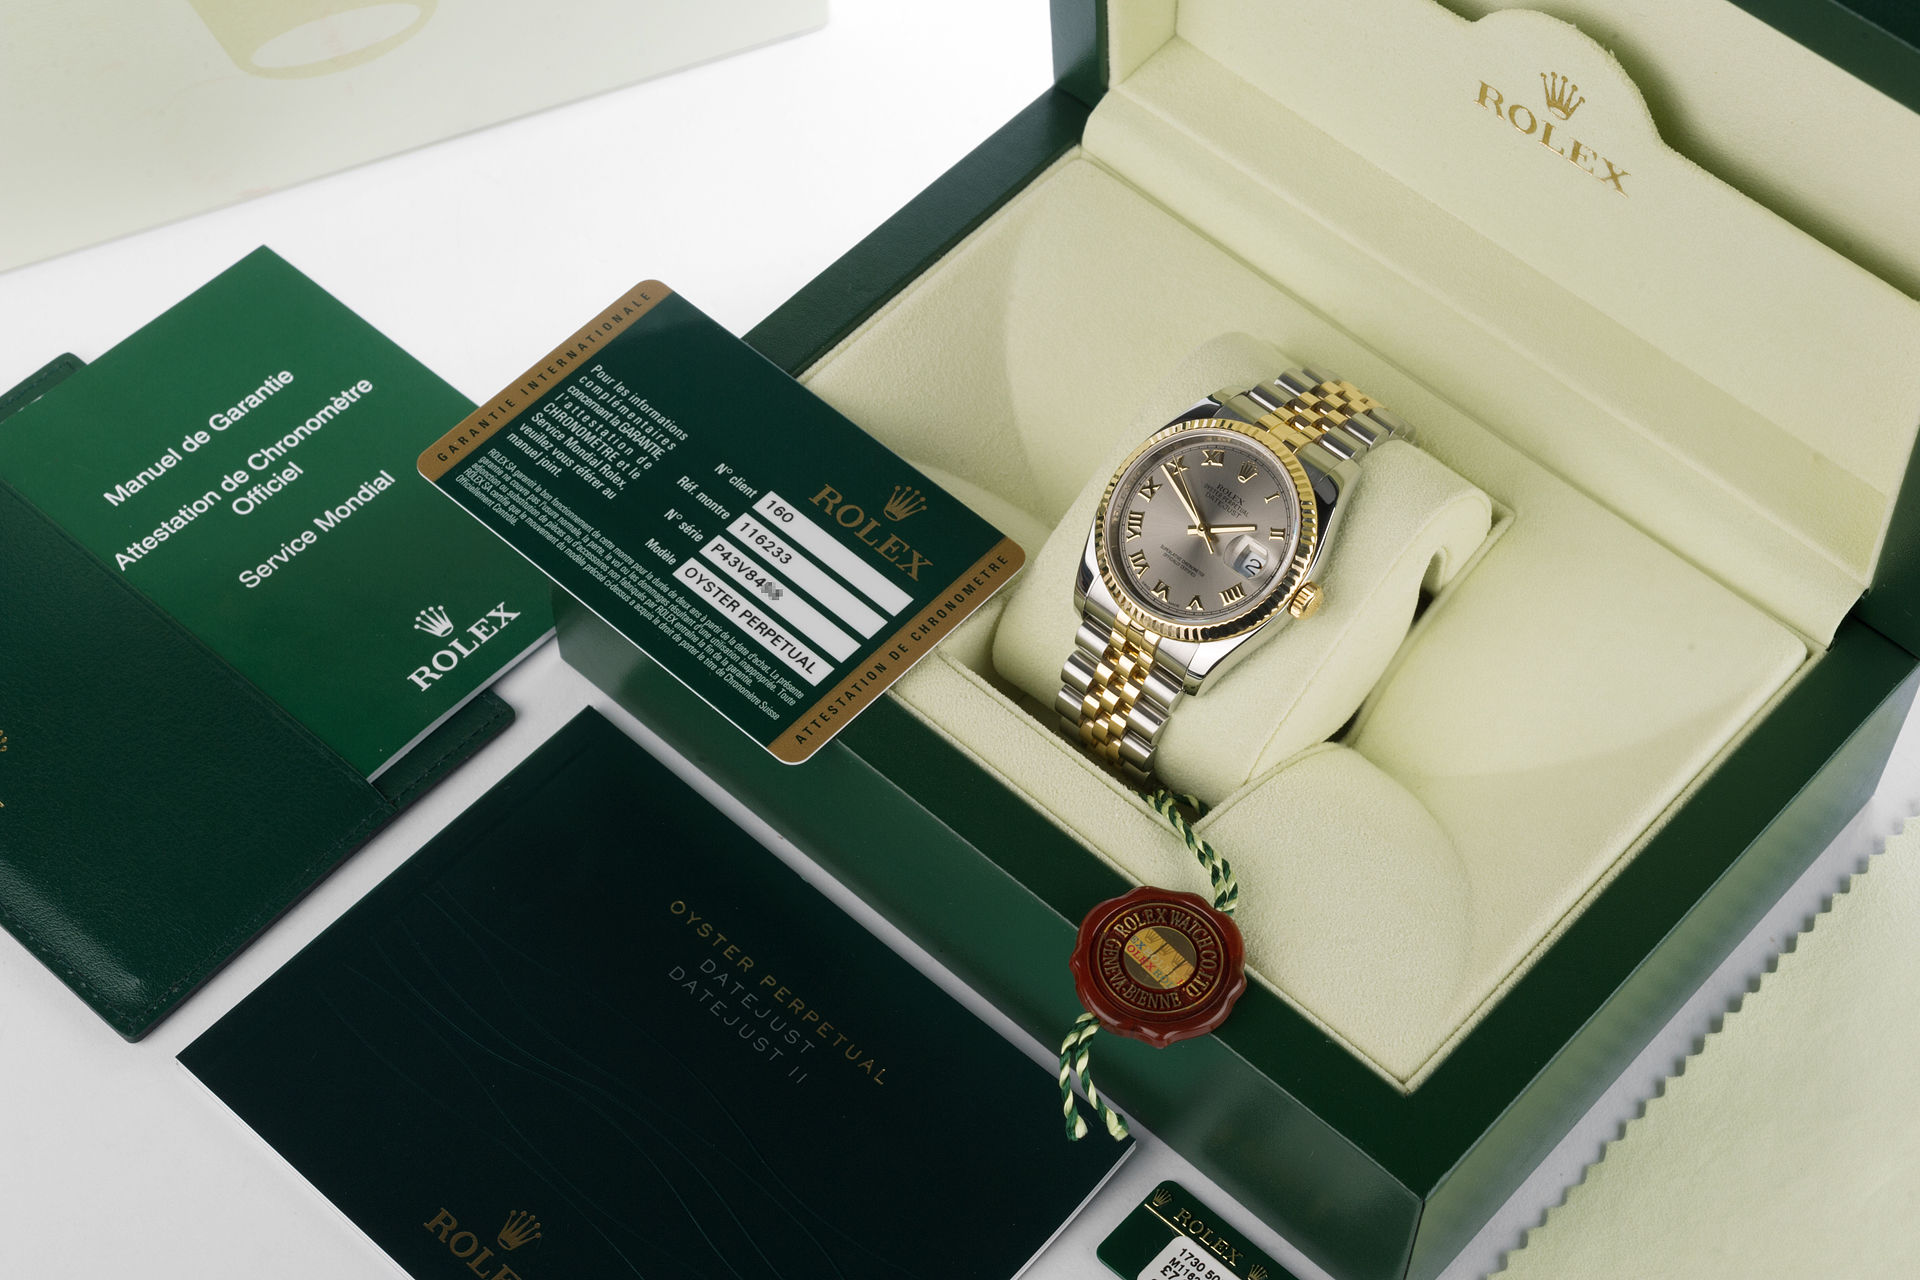 ref 116233 | 18ct Gold & Steel 'Full Set' | Rolex Datejust